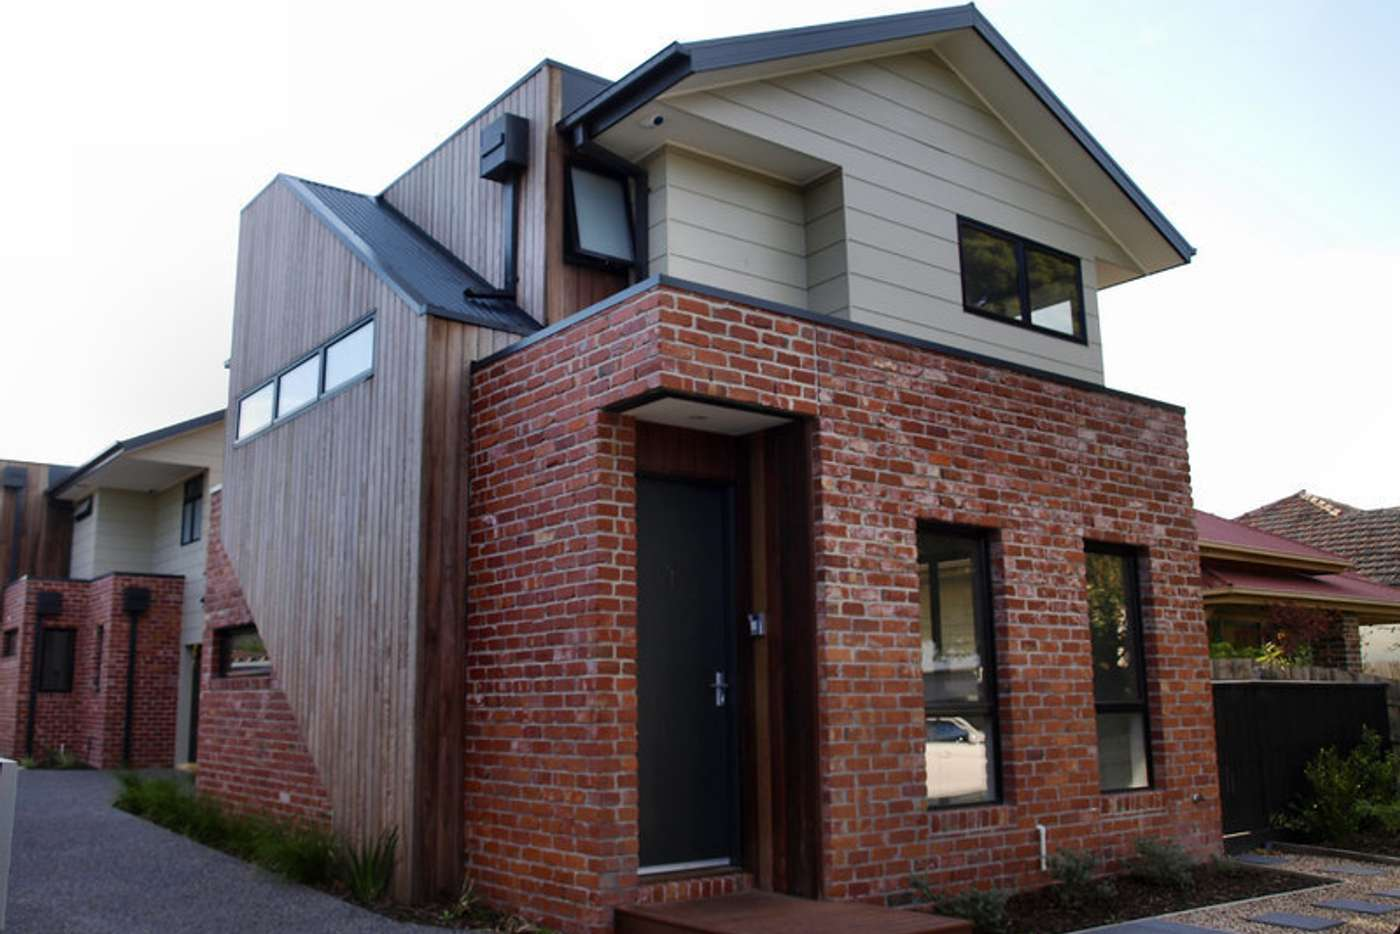 Main view of Homely townhouse listing, 1/30 Palmerston Street, West Footscray VIC 3012